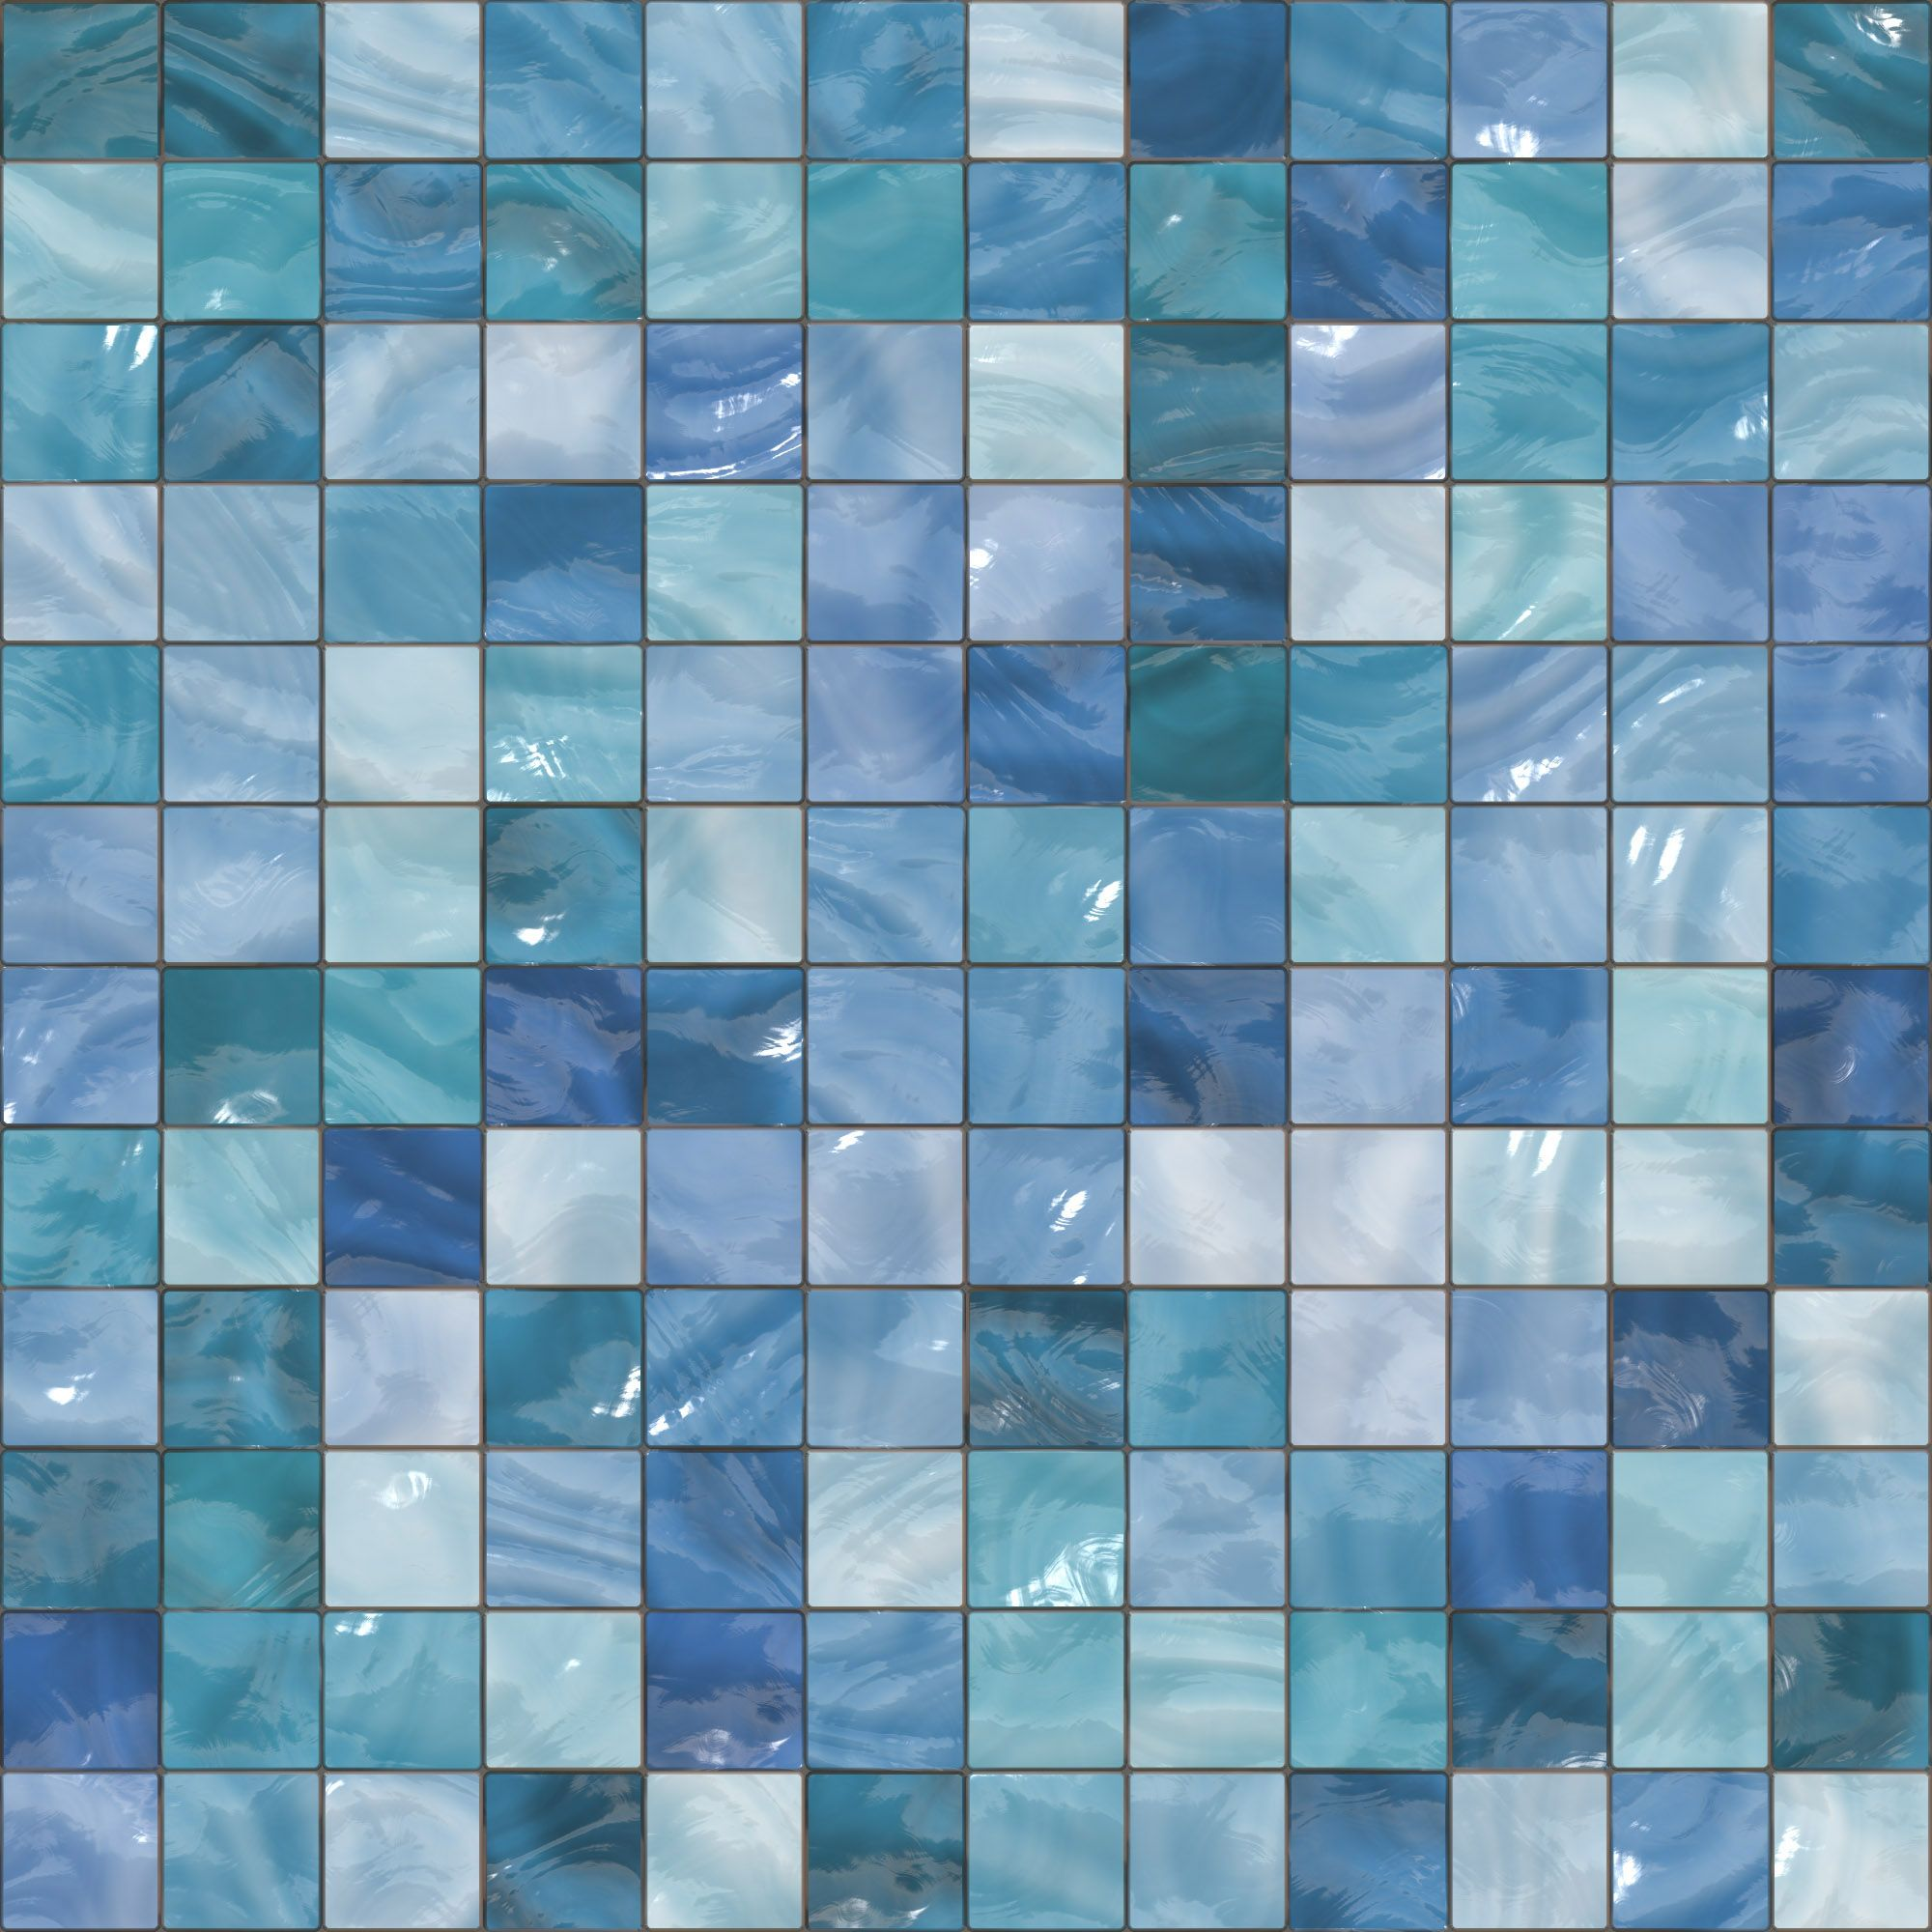 Bathroom tiles texture - Here Is A Blue Seamless Kitchen Or Bathroom Or Anywhere Tile Texture Another Generated Seamless Kitchen Tile Background Texture